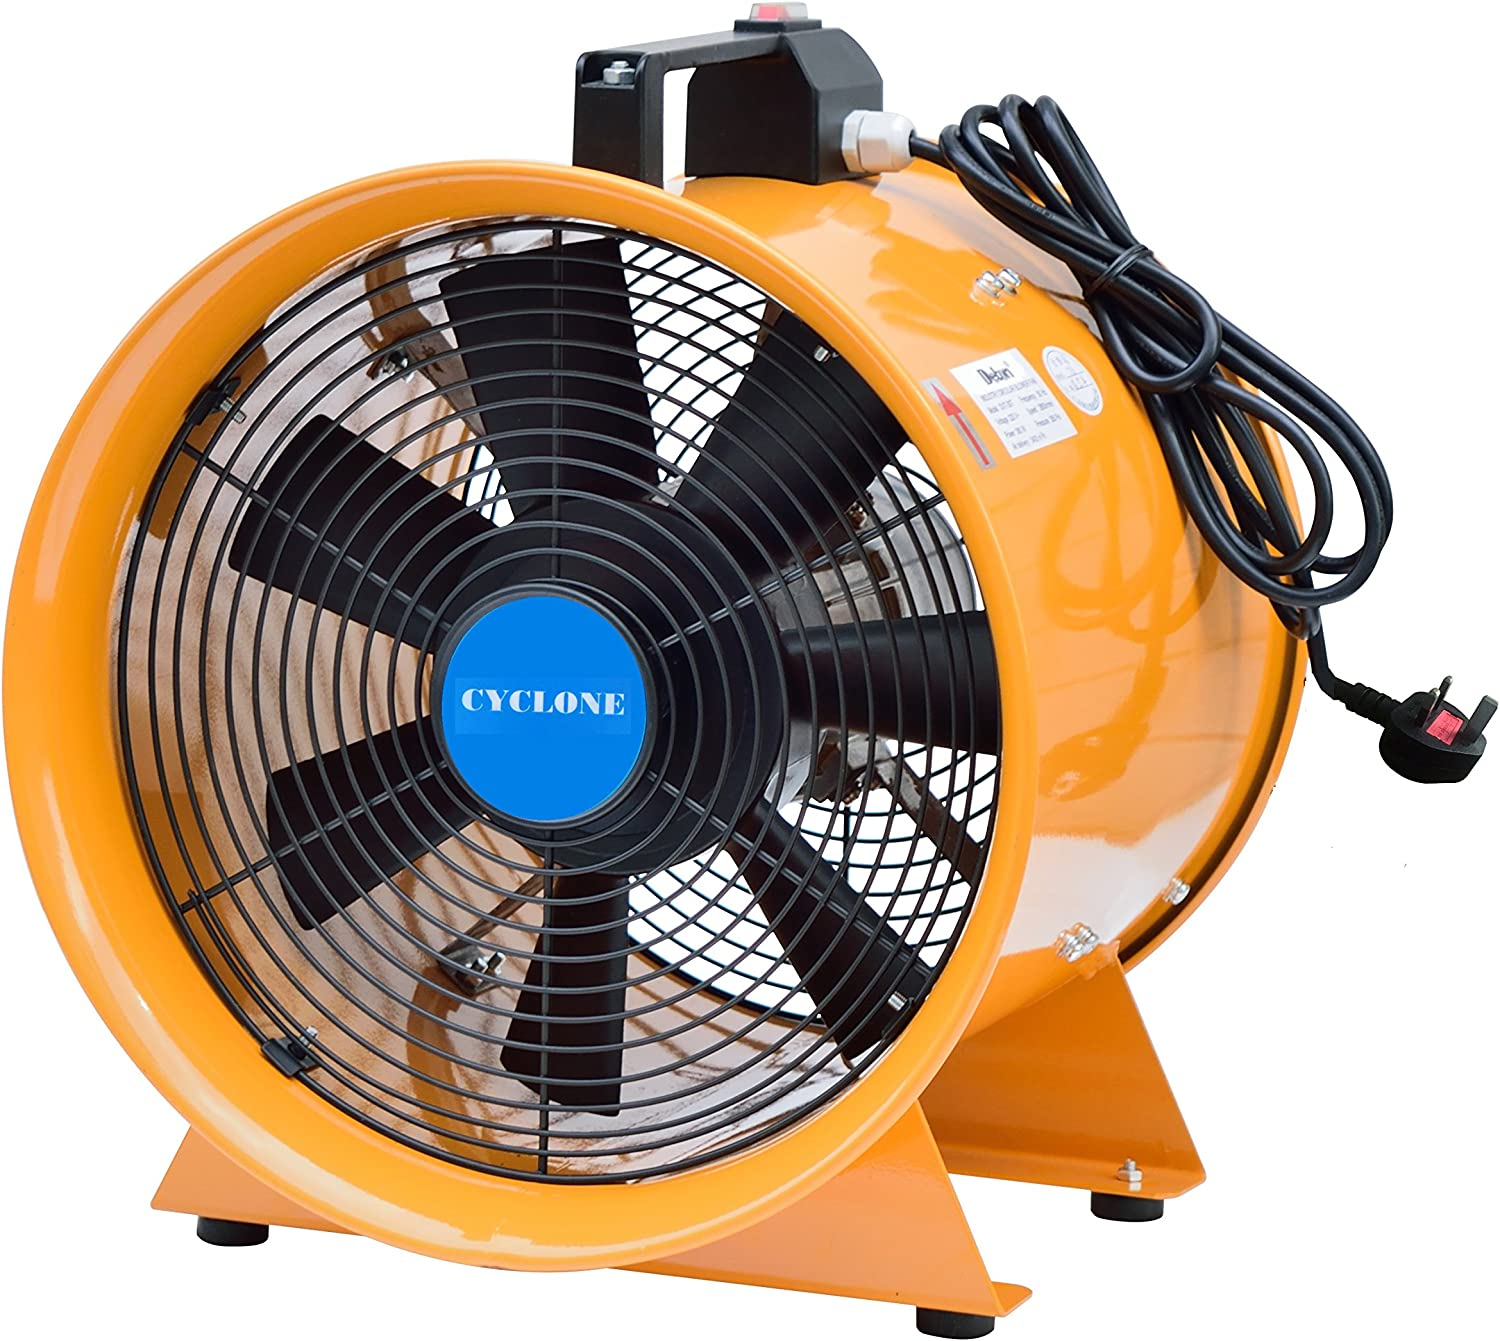 Cyclone 200 mm Dust FUME Extractor: Amazon.es: Grandes ...